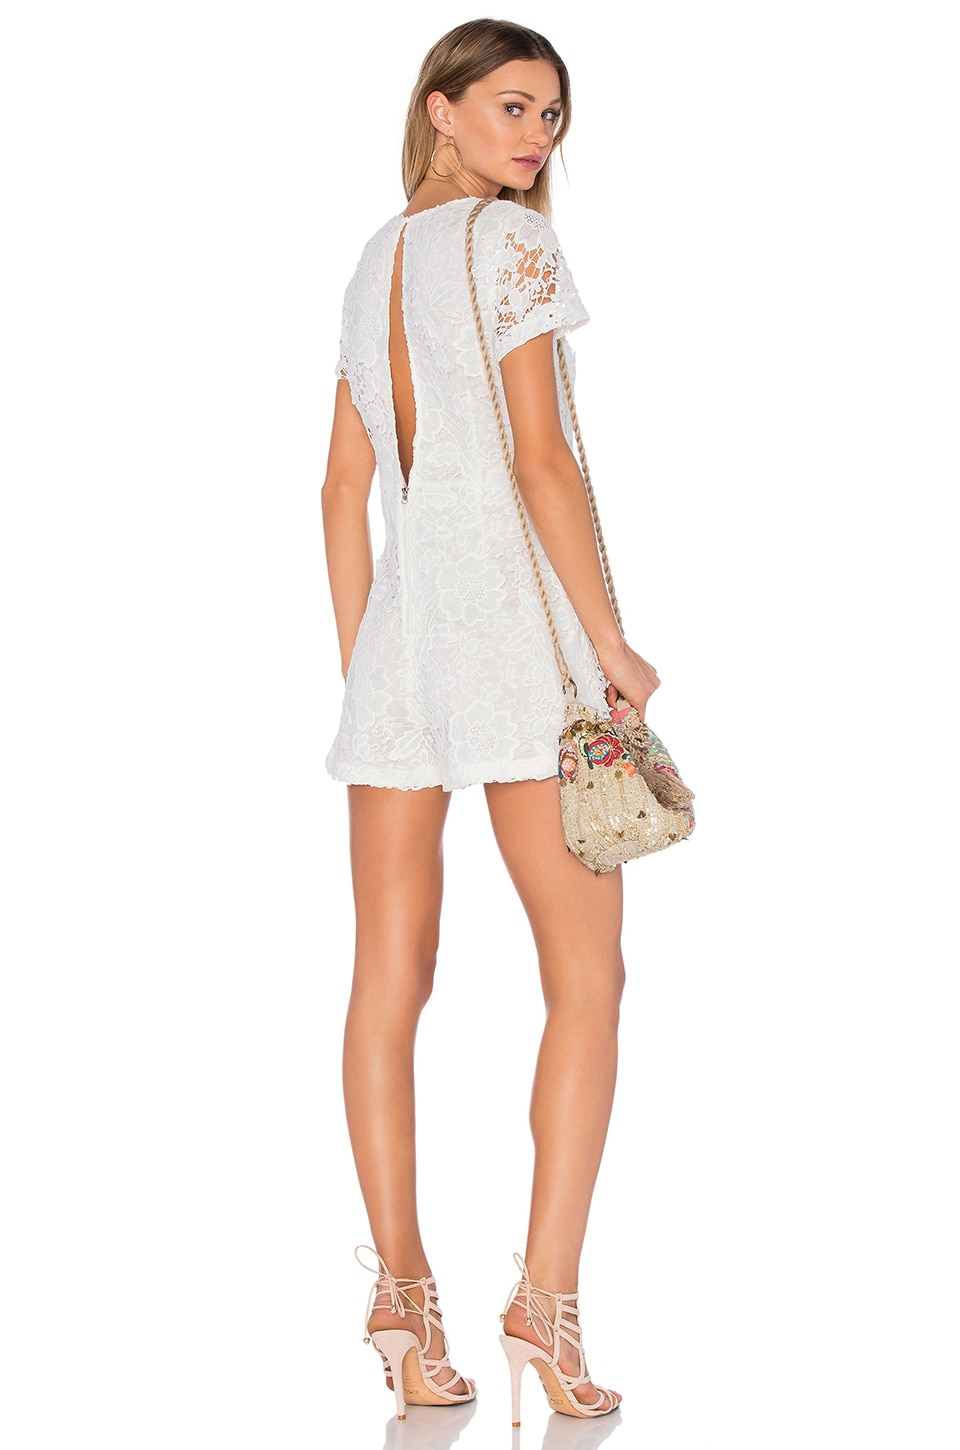 sen Maxwell Romper in White